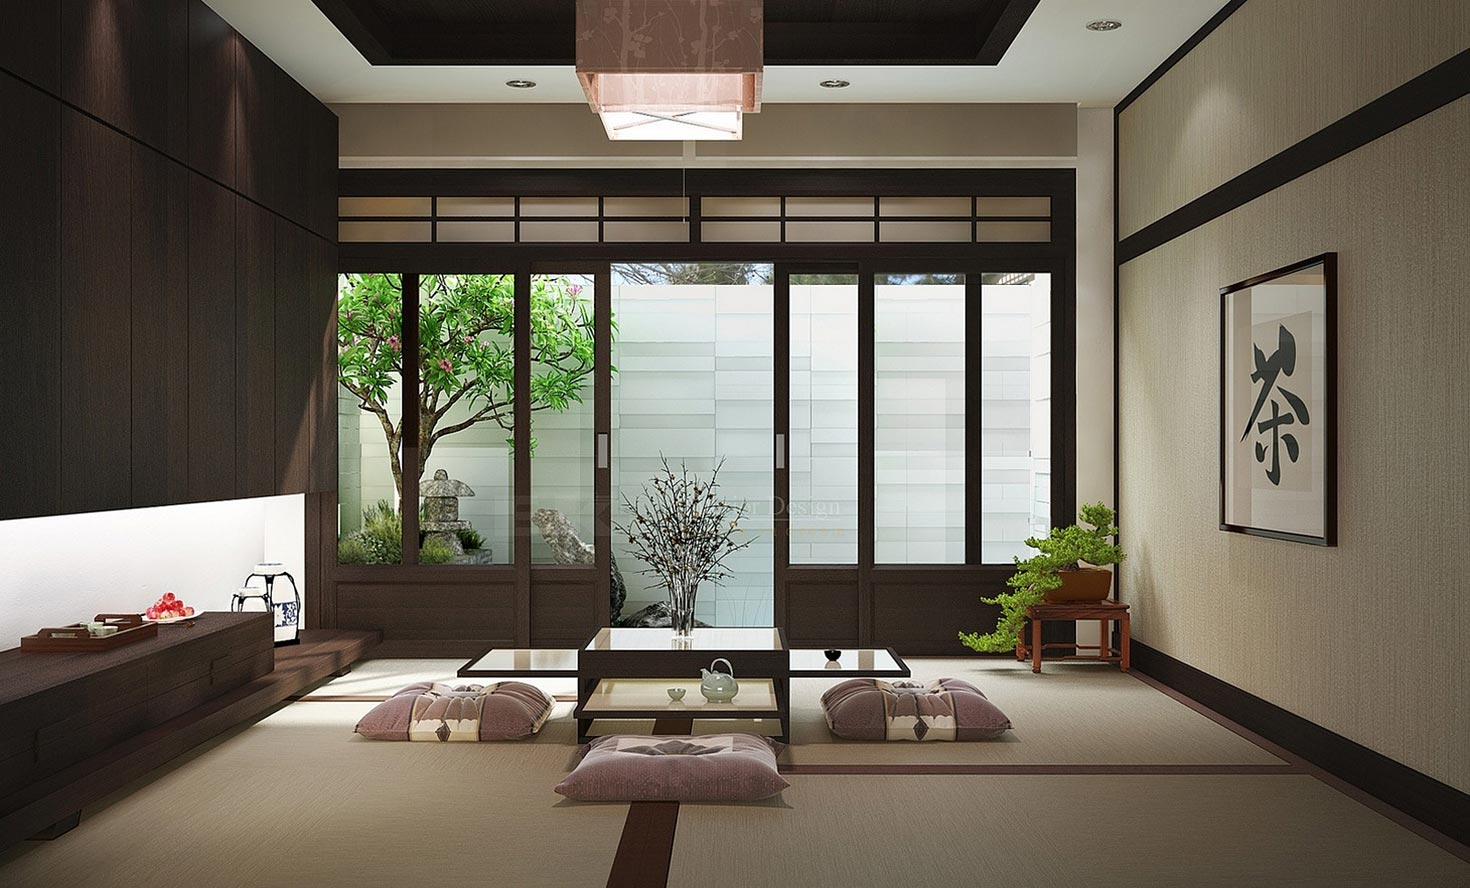 Asian / Zen Interior Design